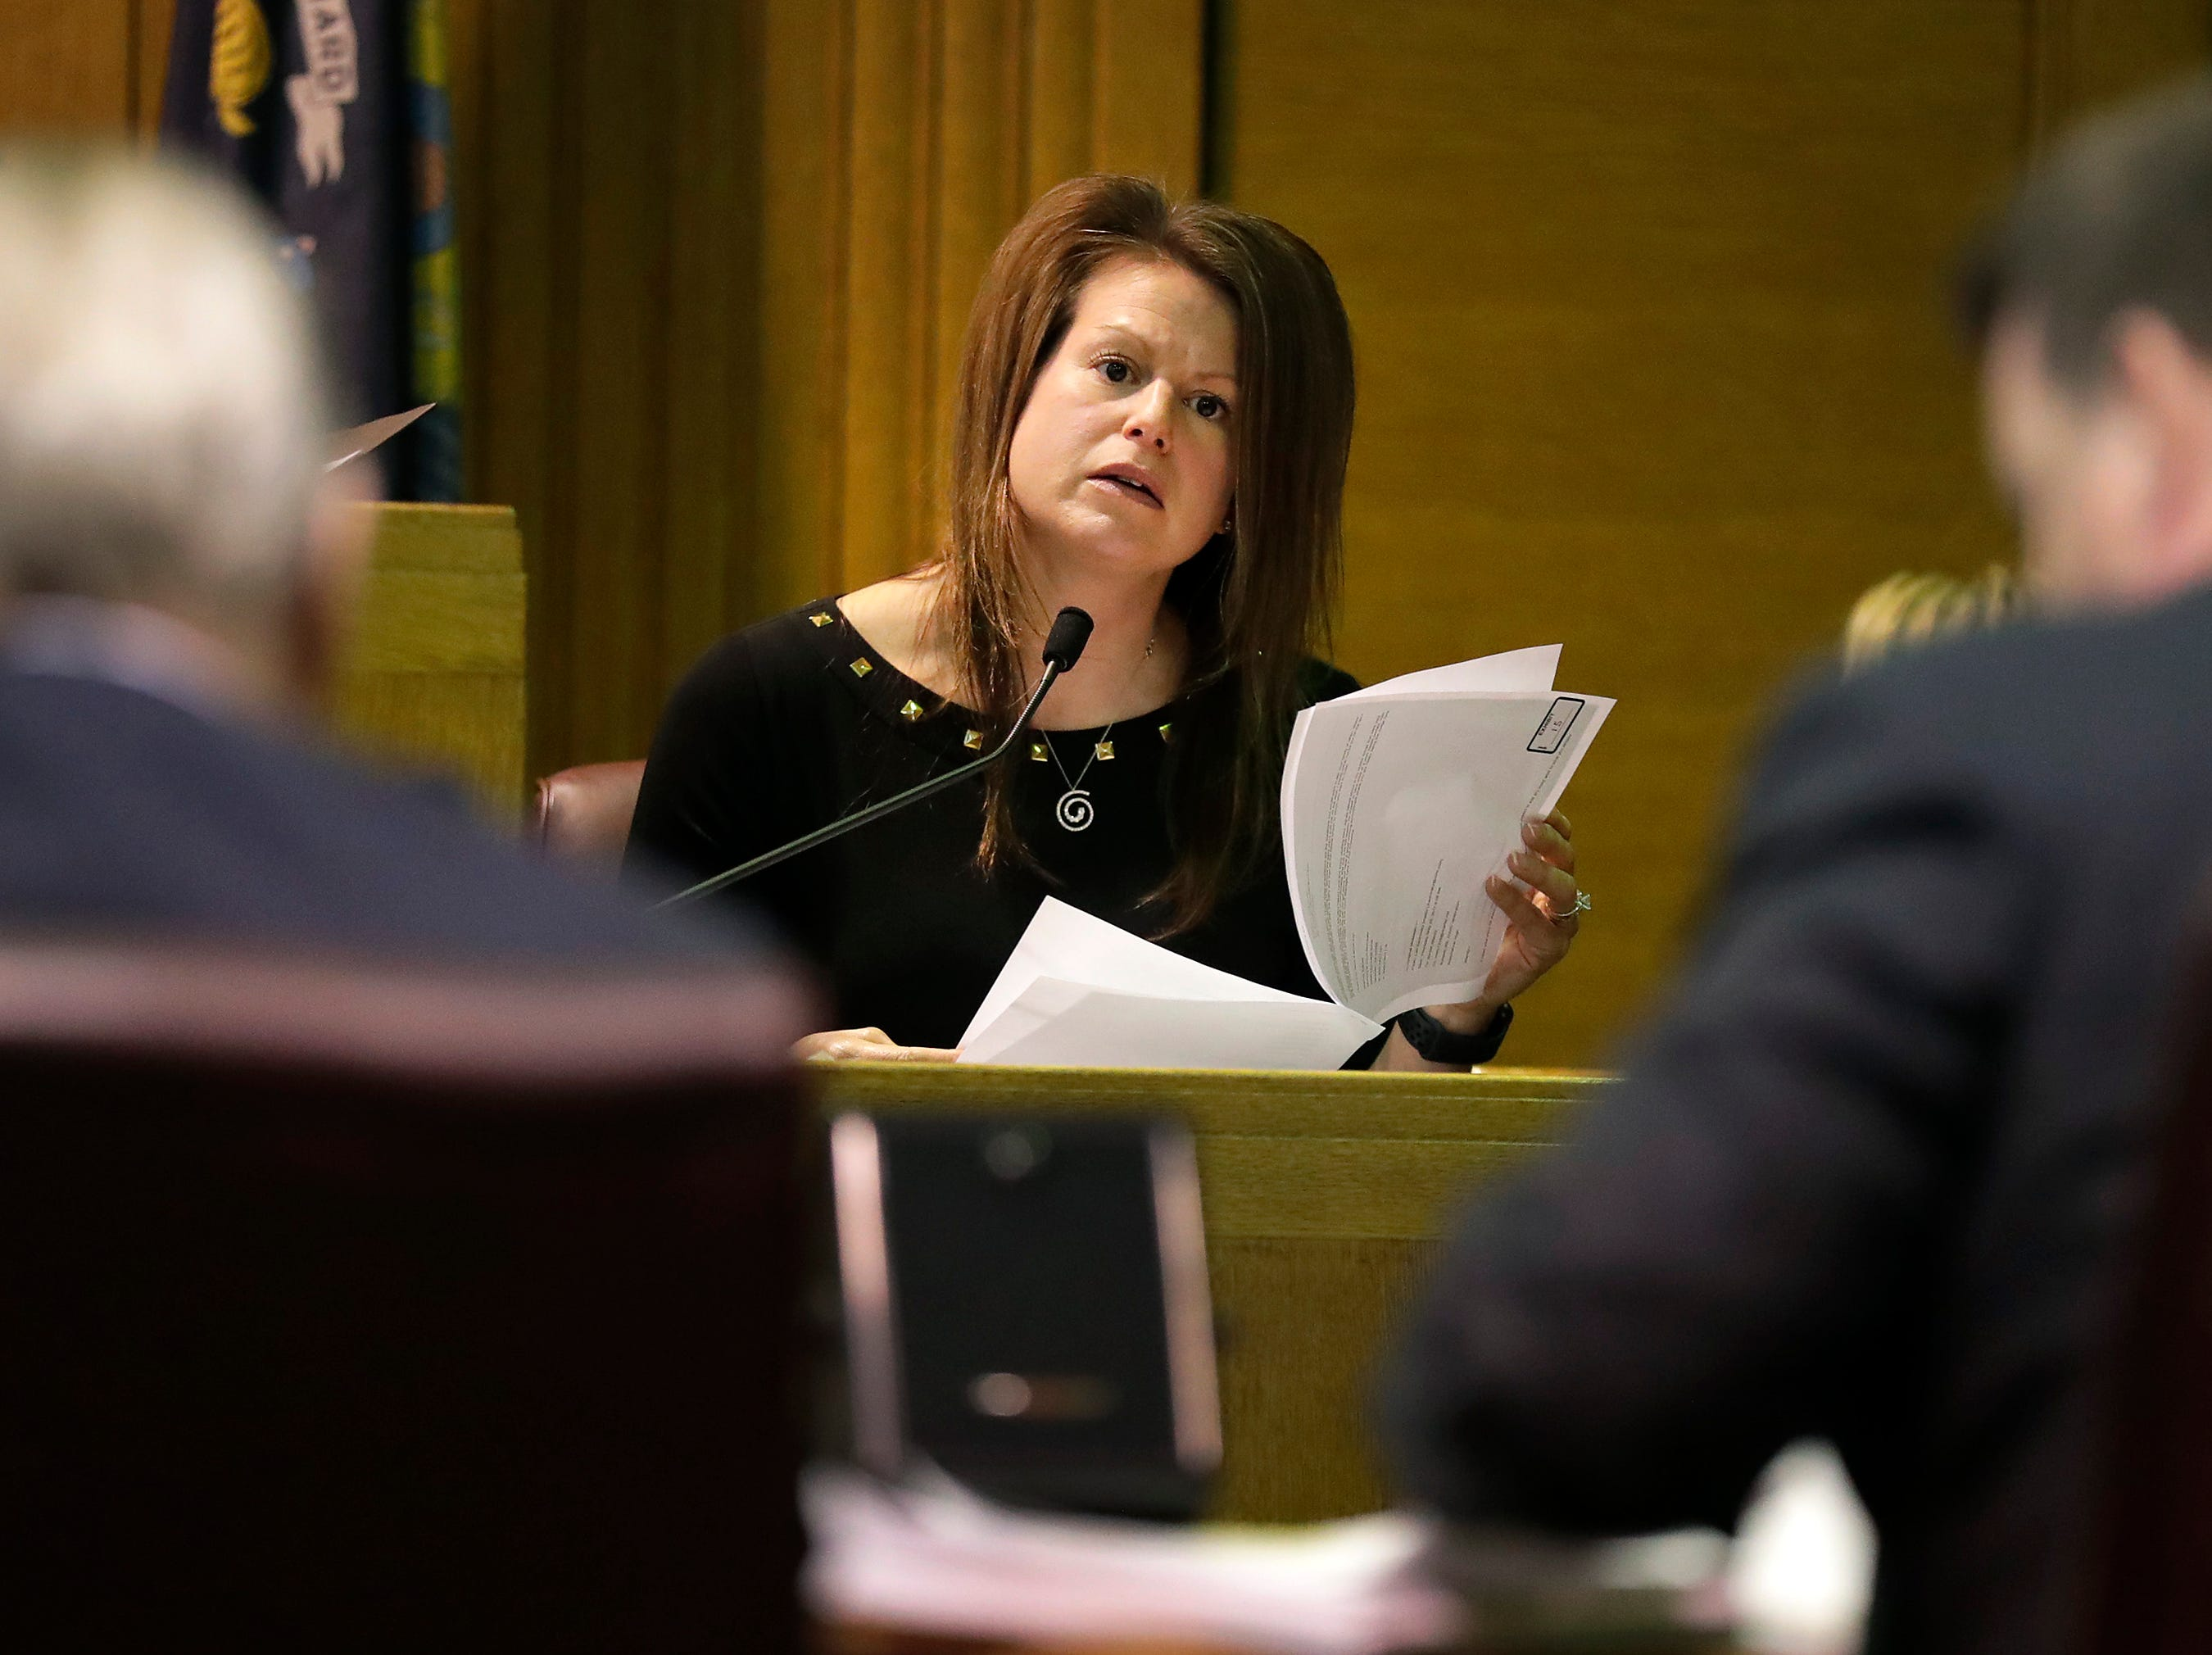 Witness Mandy Bartelt, Municipal Court Clerk, Village of Fox Crossing, gives testimony during a Judicial Commission disciplinary hearing for Fox Crossing Municipal Judge Len Kachinsky on Thursday, February 7, 2019, at the Winnebago County Courthouse in Oshkosh, Wis.